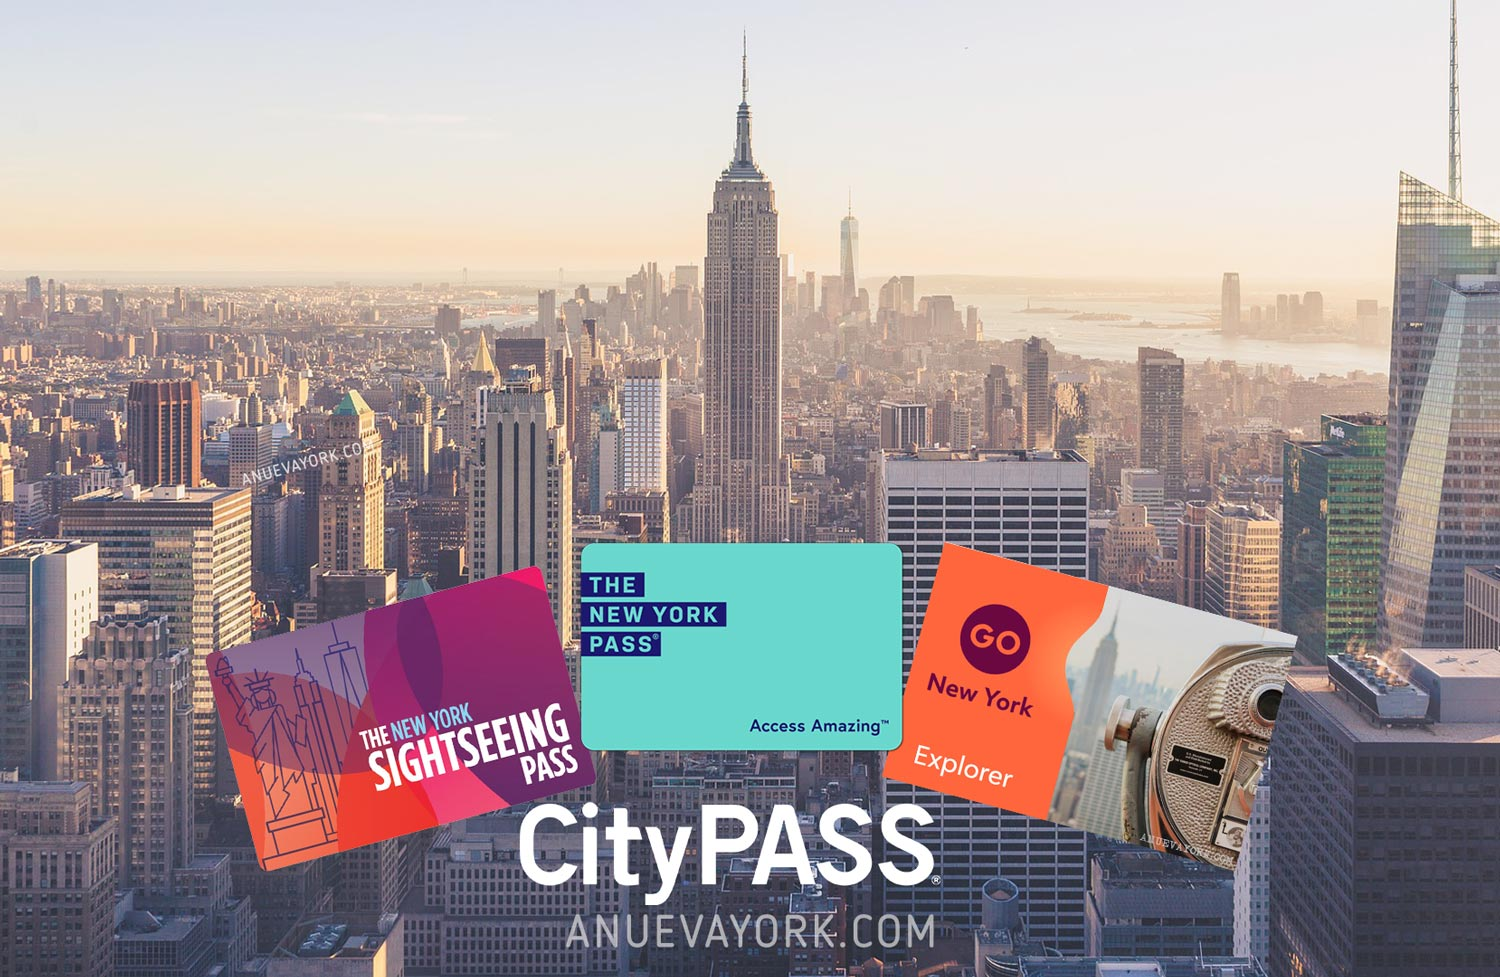 Comparativa de tarjetas turisticas de Nueva York - Diferencias CityPass, New York Pass, Sightseeing Pass y Go New York